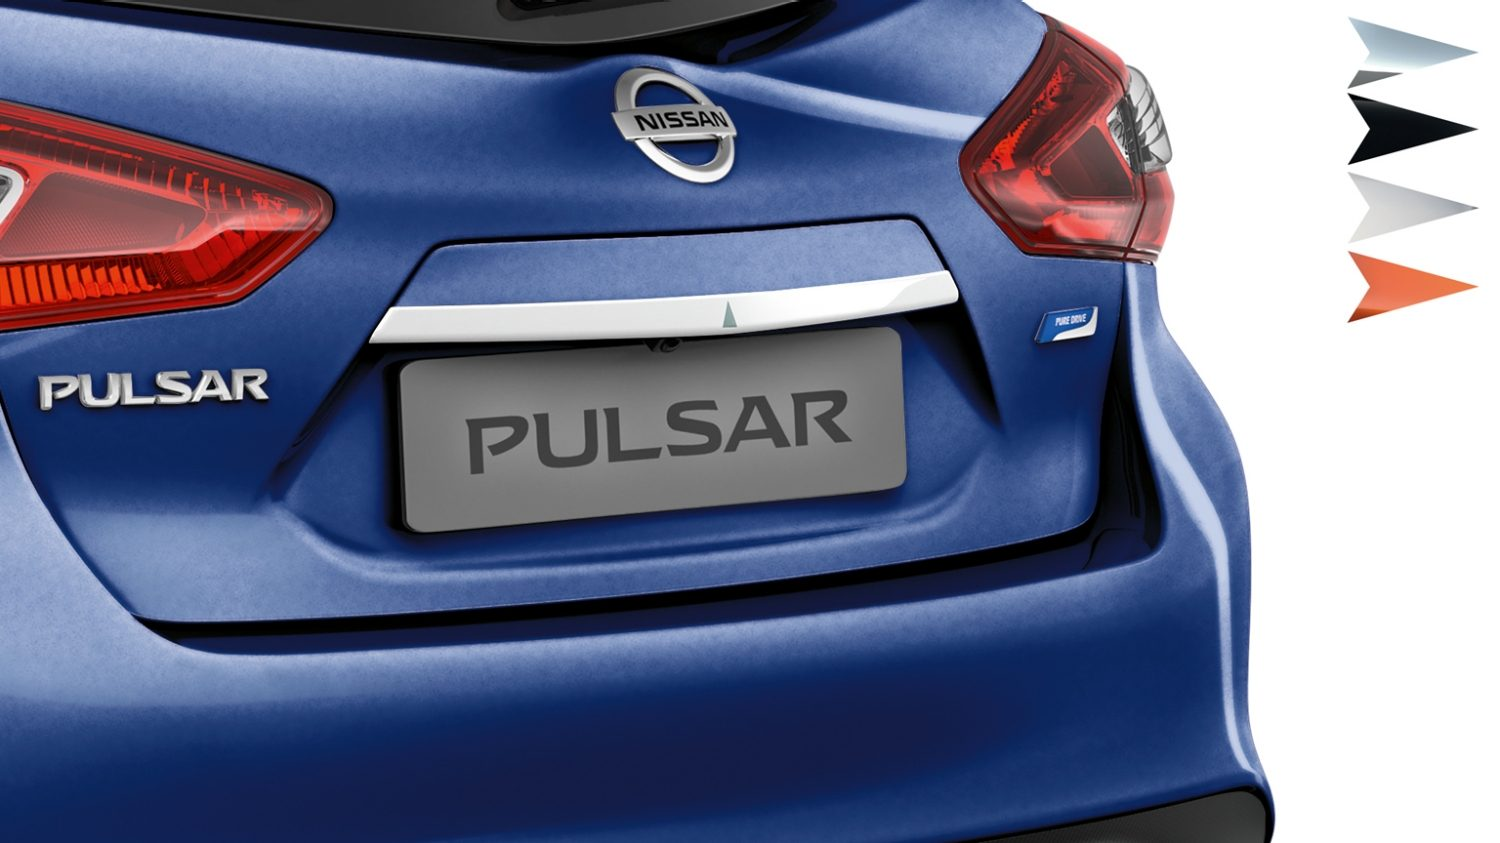 Nissan Pulsar hatchback - Trunks handle london white